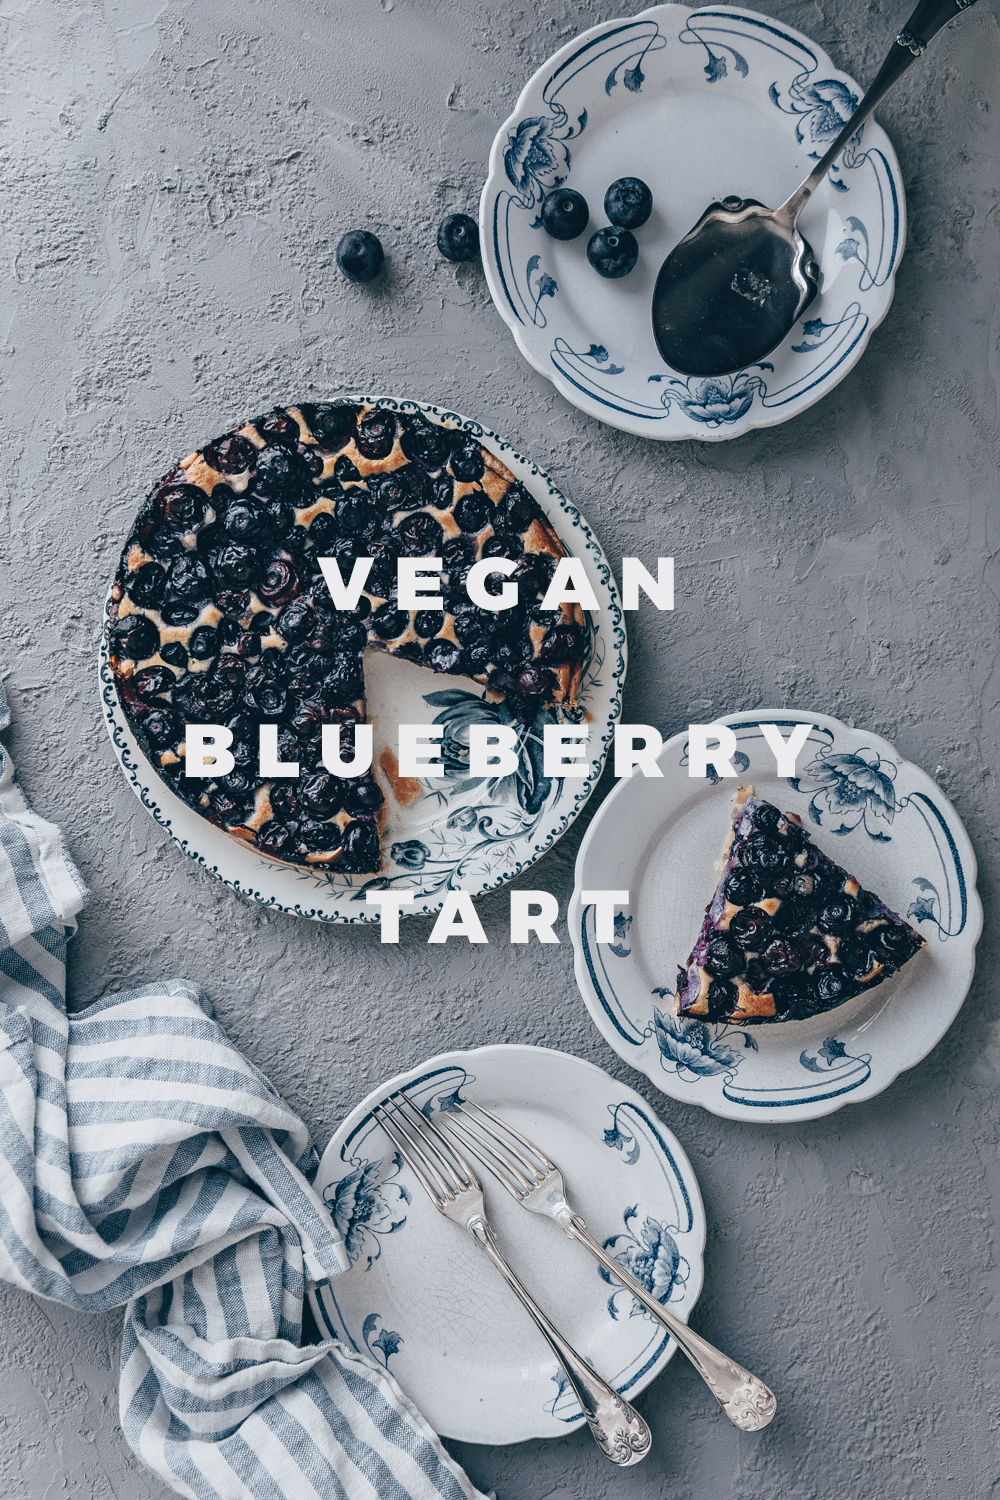 Vegan Blueberry Tart inspired by my summer in Europe - a vegan recipe by black.white.vivid.// food styling, food photography, French tarte, French recipe, French cuisine, Vegan food, Vegan french recipe, vegan cake, vegan tart, Swedish recipe, Scandinavian recipe, Blueberry cake, Swedish blueberry